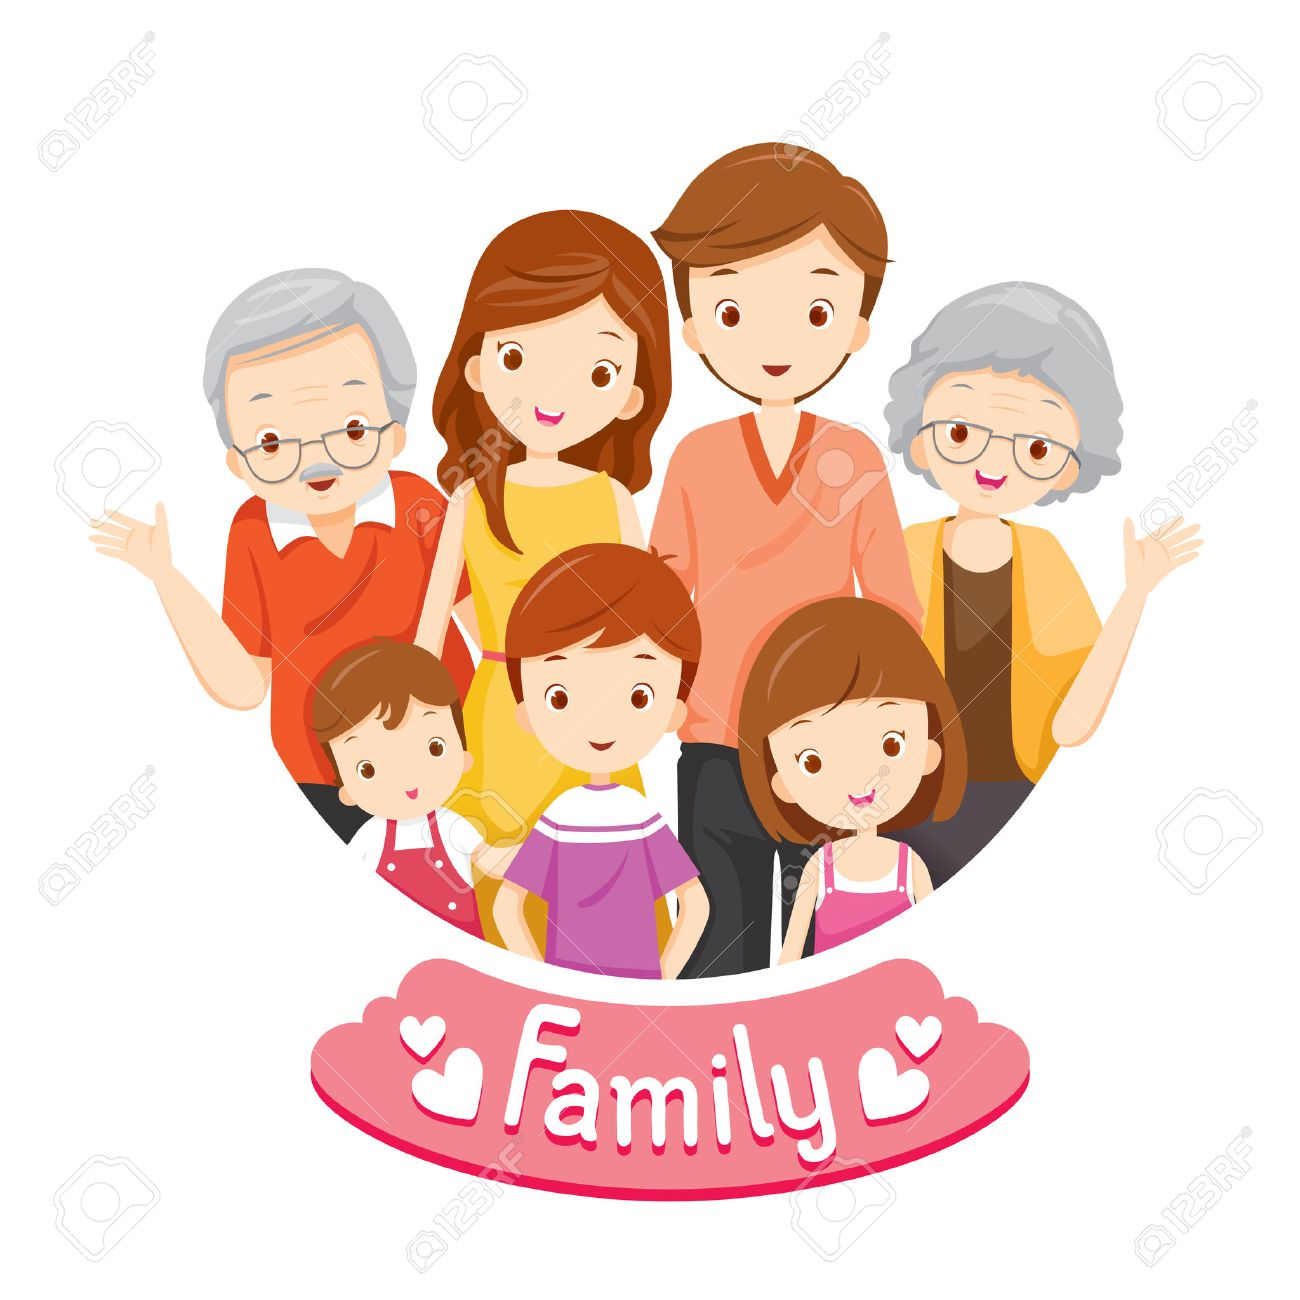 Happy Family Portrait, Relationship, Togetherness, Vacations, Holiday, Lifestyle - 54343458